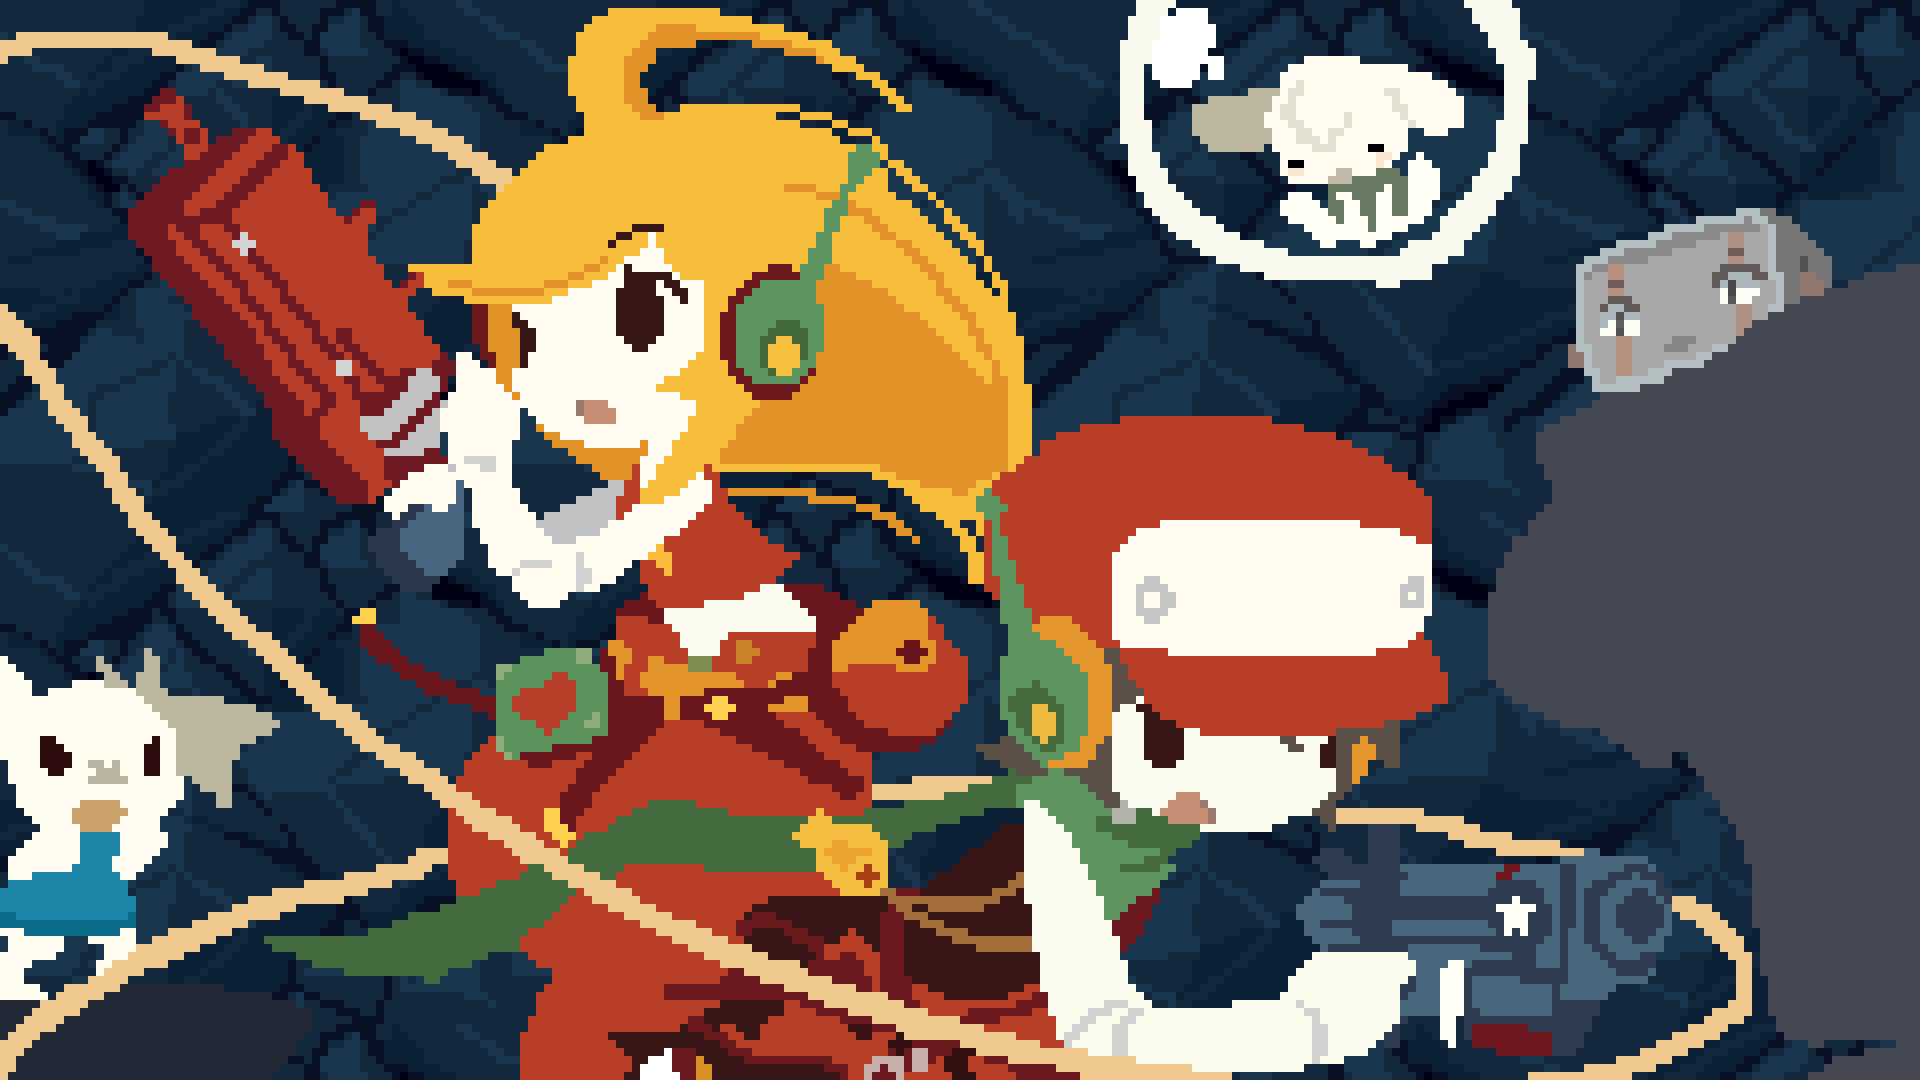 Modojo | Side-Scrolling Adventure Game Cave Story Is Coming To The Nintendo Switch